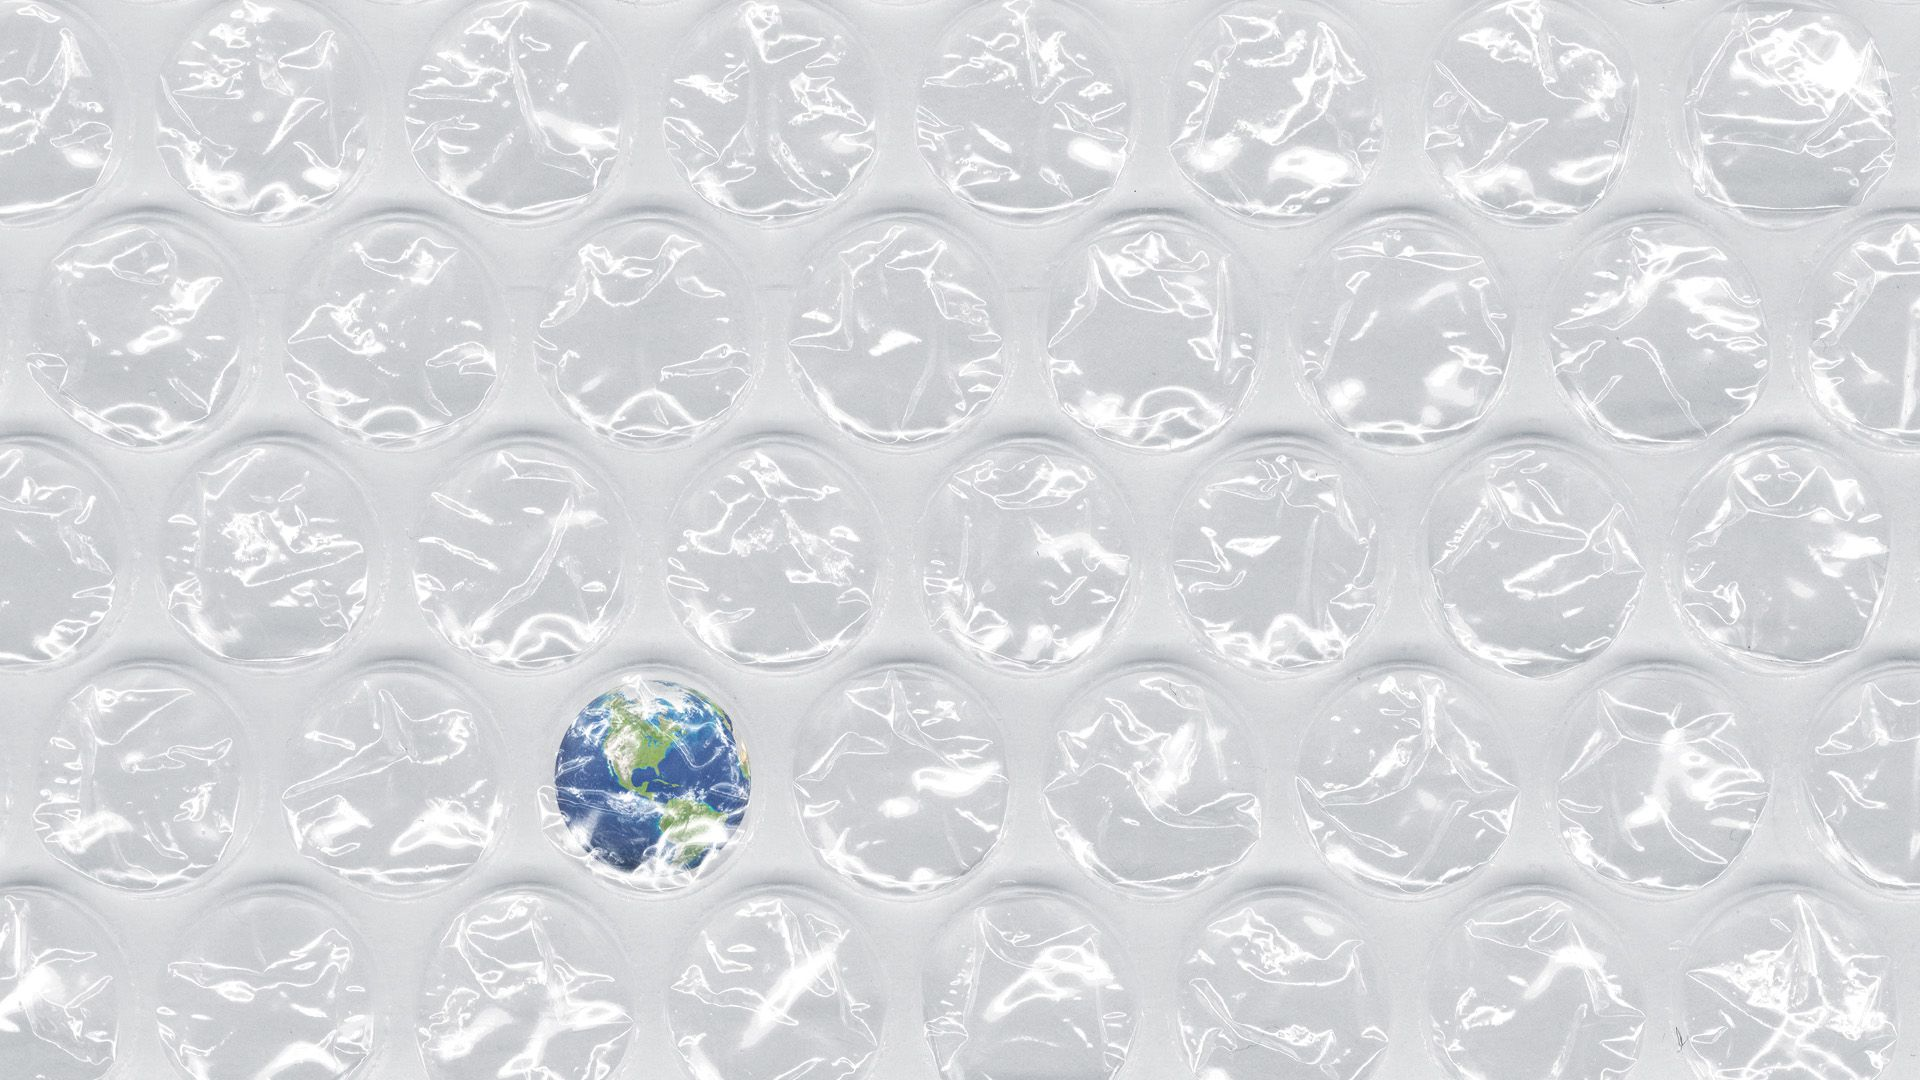 Illustration of plastic bubble wrap with one bubble including the Earth.